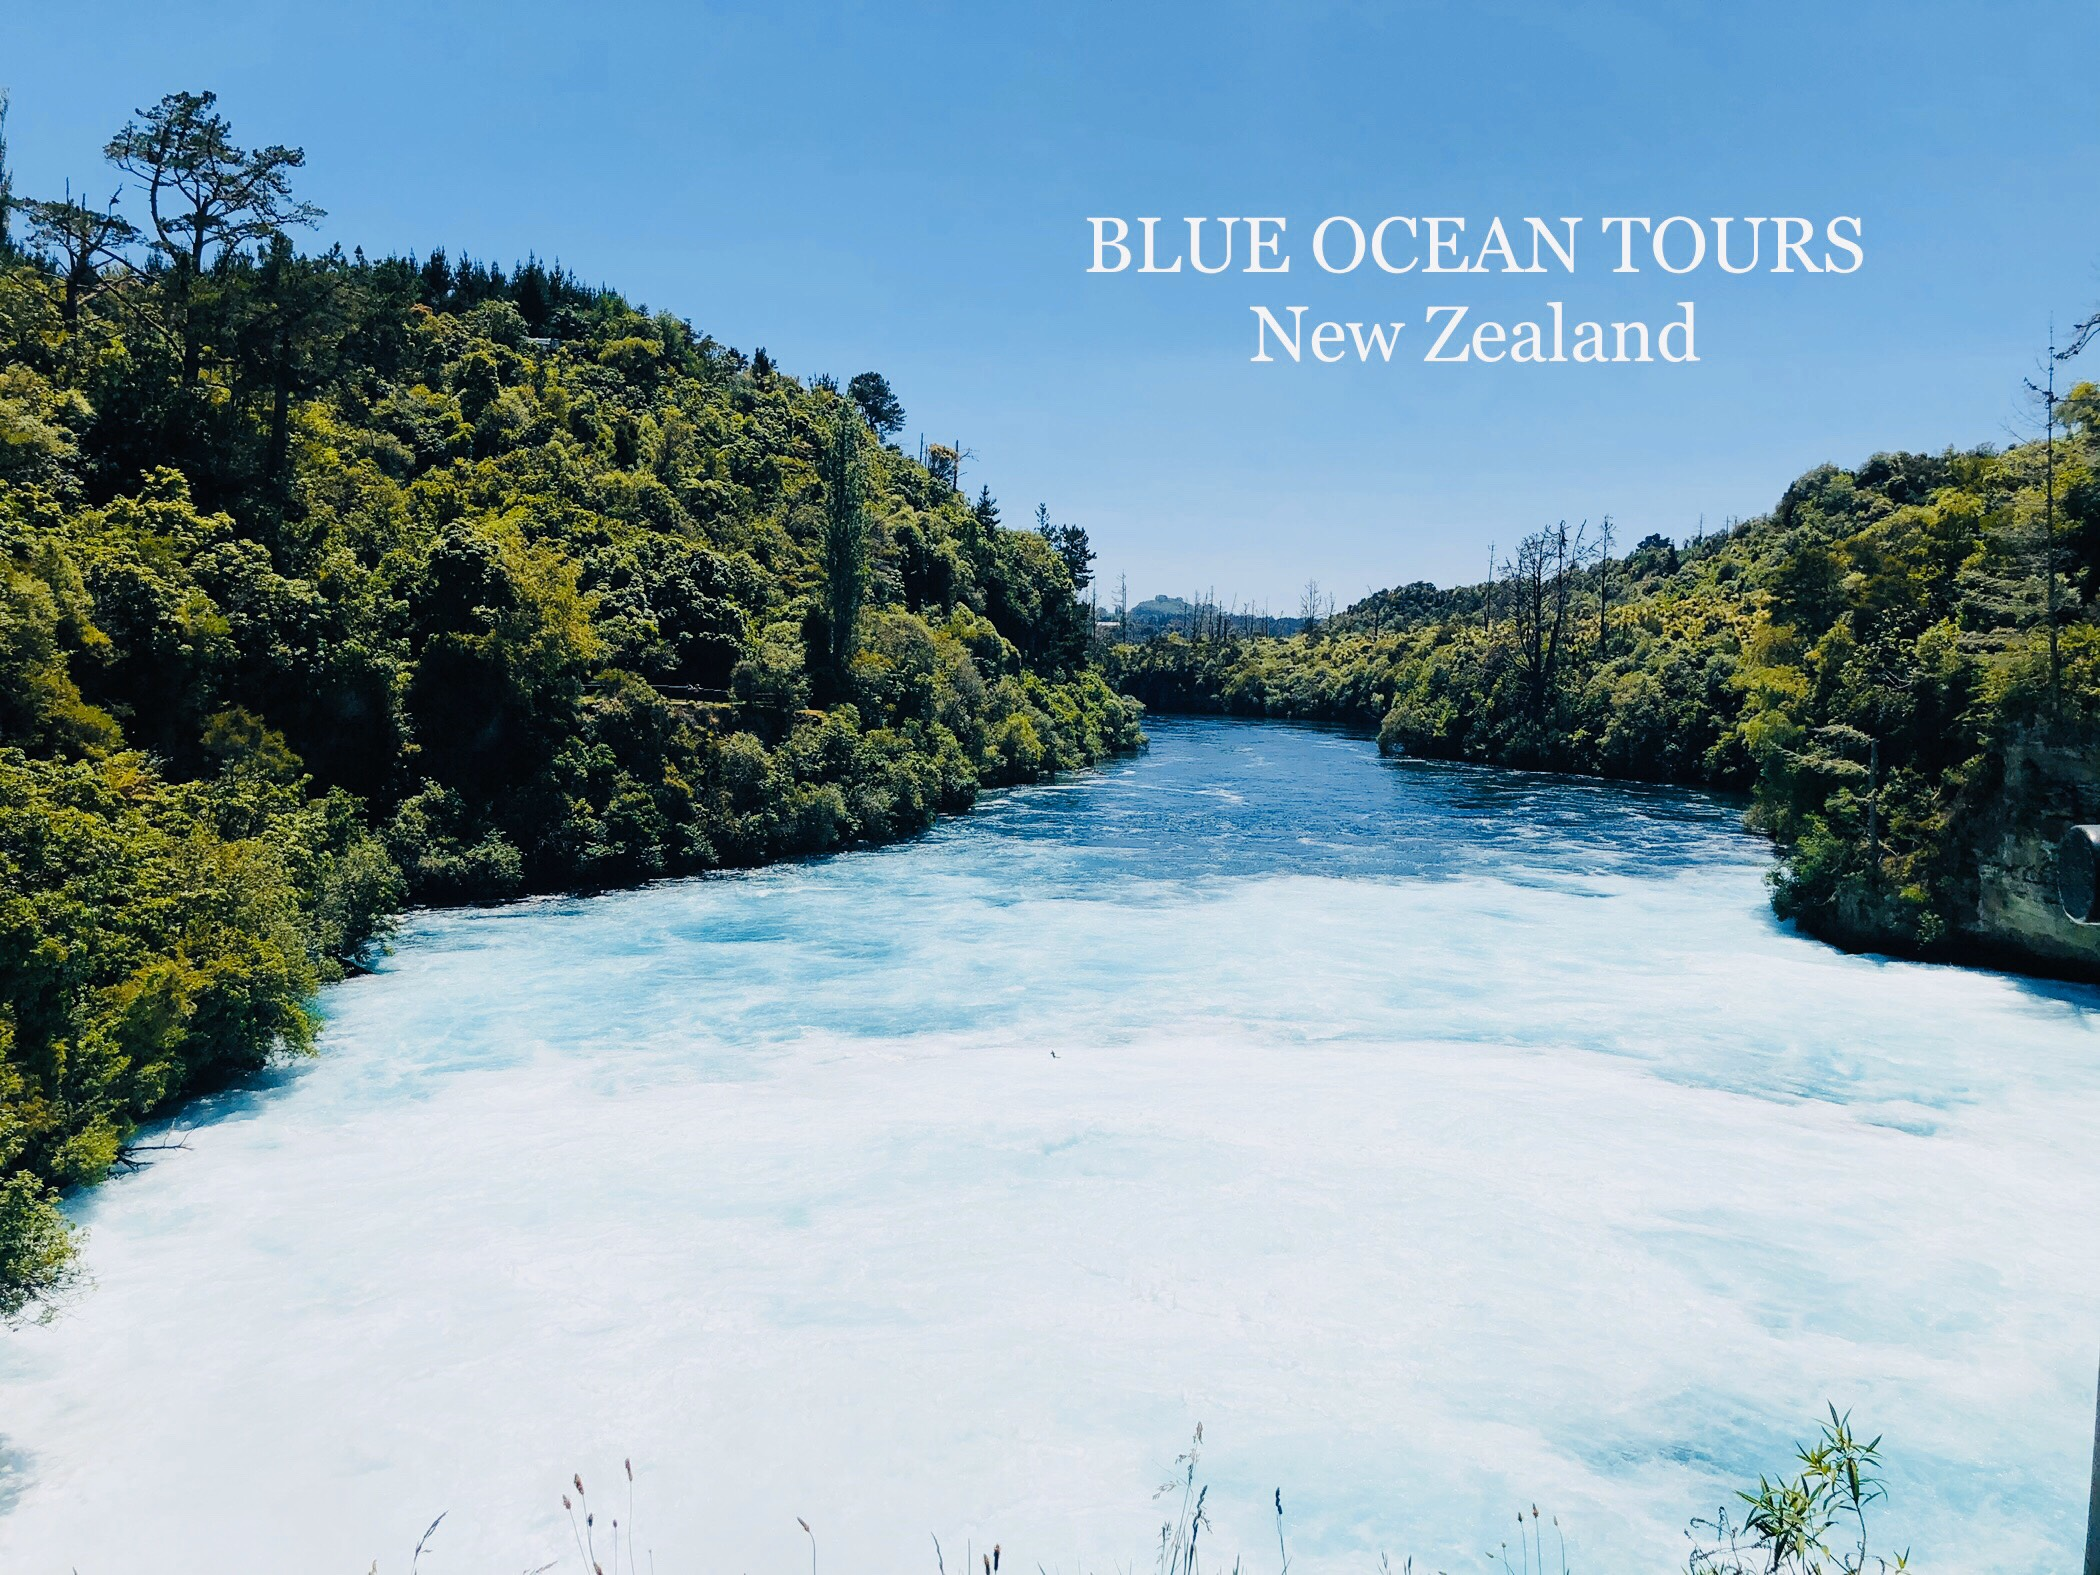 Du lịch New Zealand cùng Blue Ocean Tours